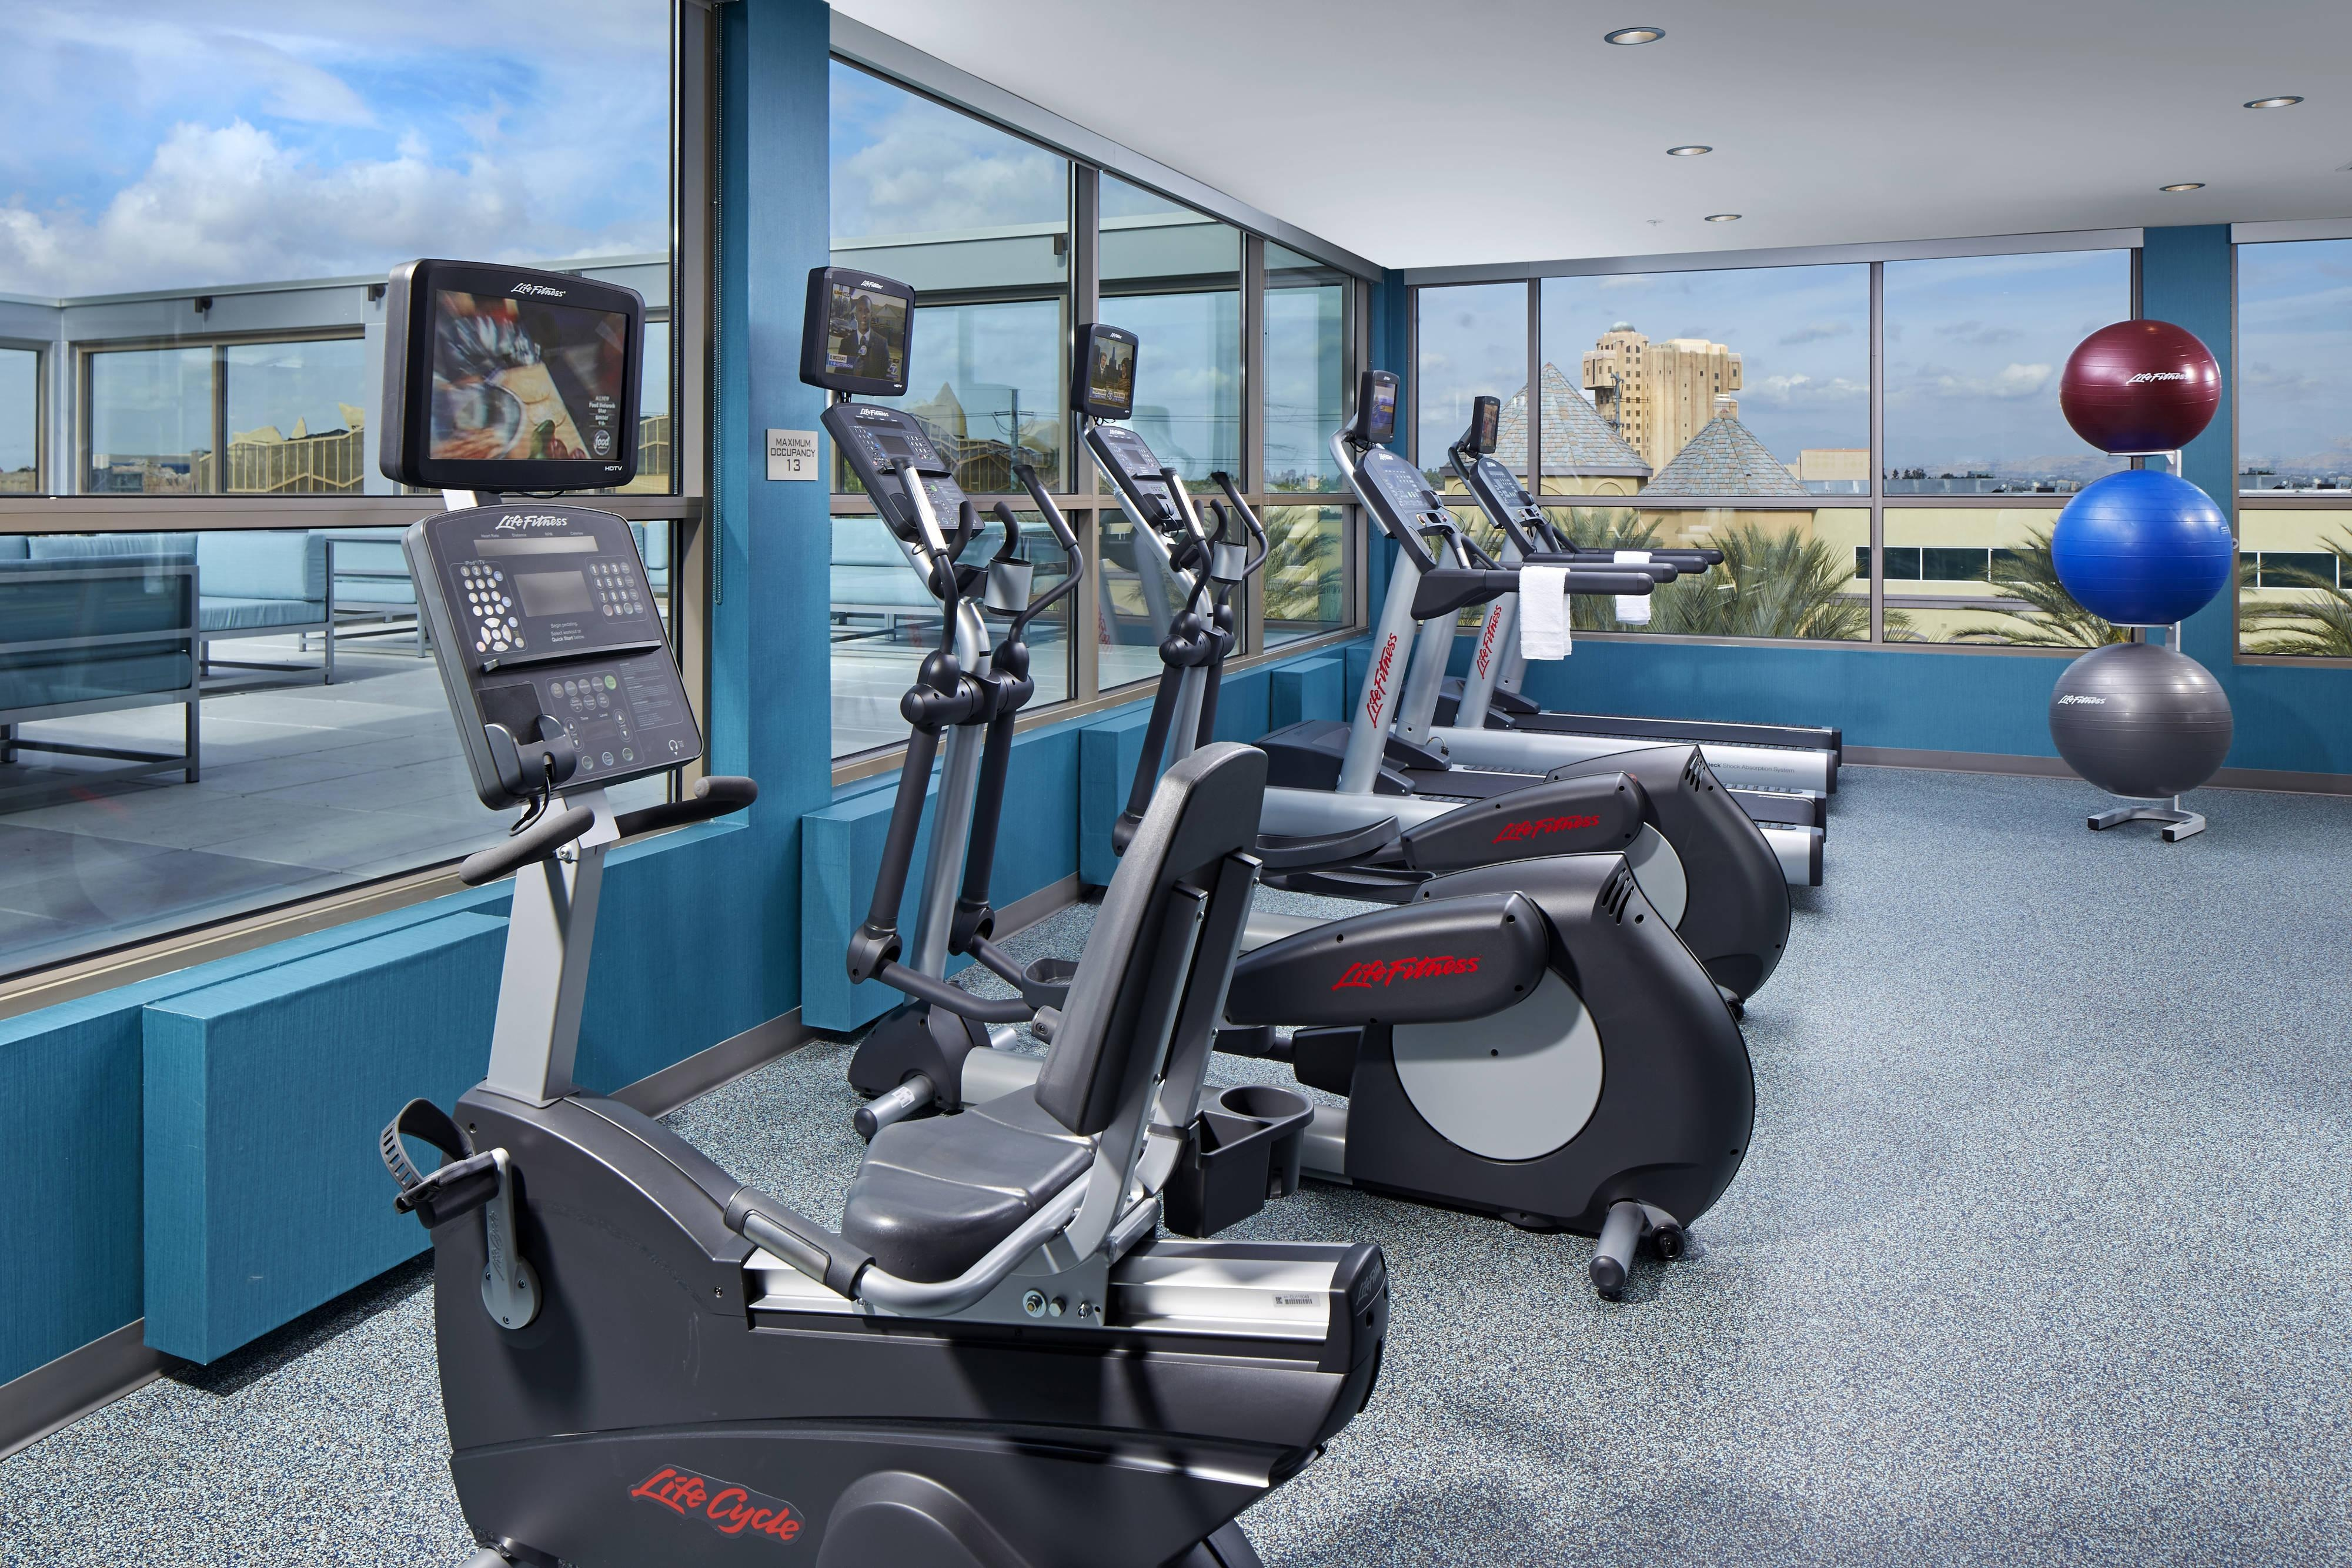 Springhill Suites at Anaheim Resort Fitness Center